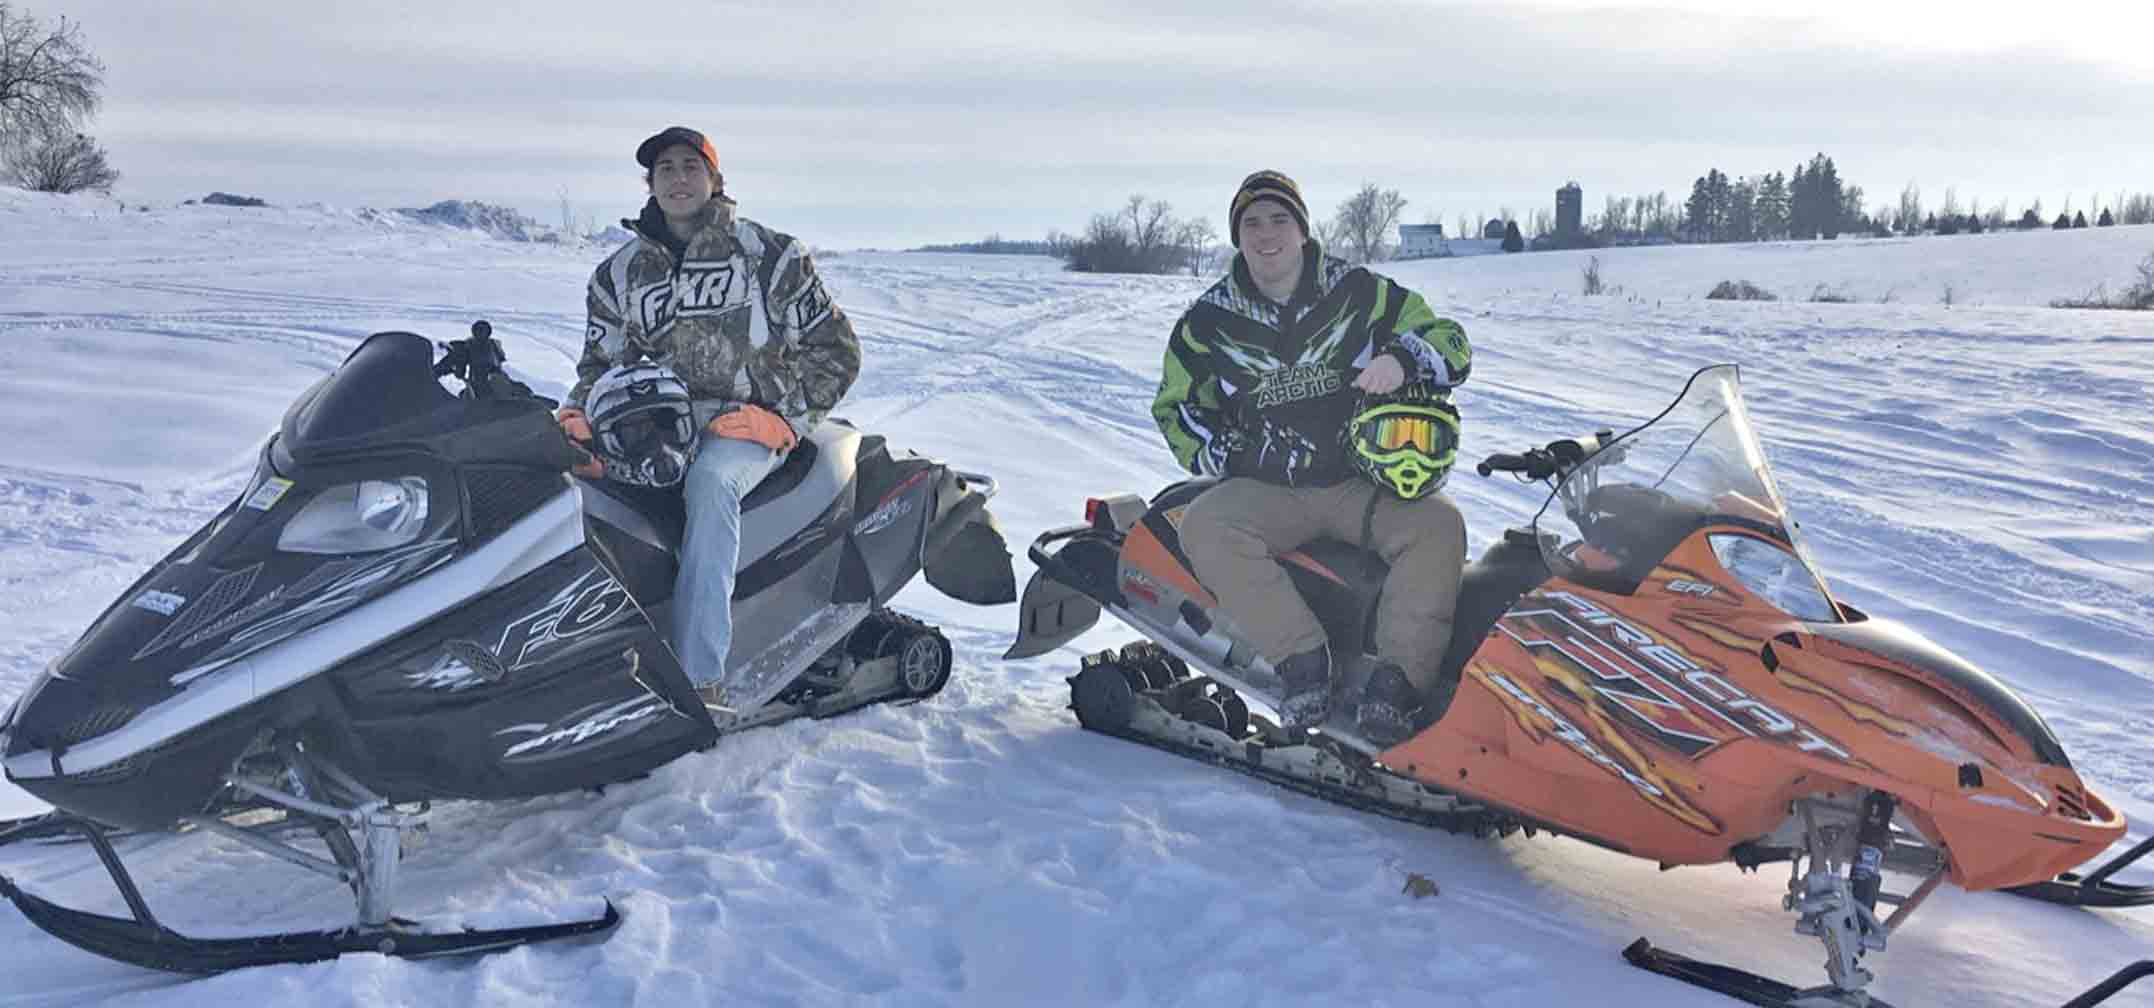 For cousins Blake and Tanner Kuennen (l-r), snowmobiling has become one of their favorite outdoor winter activities. Riding upwards of 100 miles per day, the two locals take their sleds out for a ride every opportunity they get throughout the winter months. (submitted photo)...